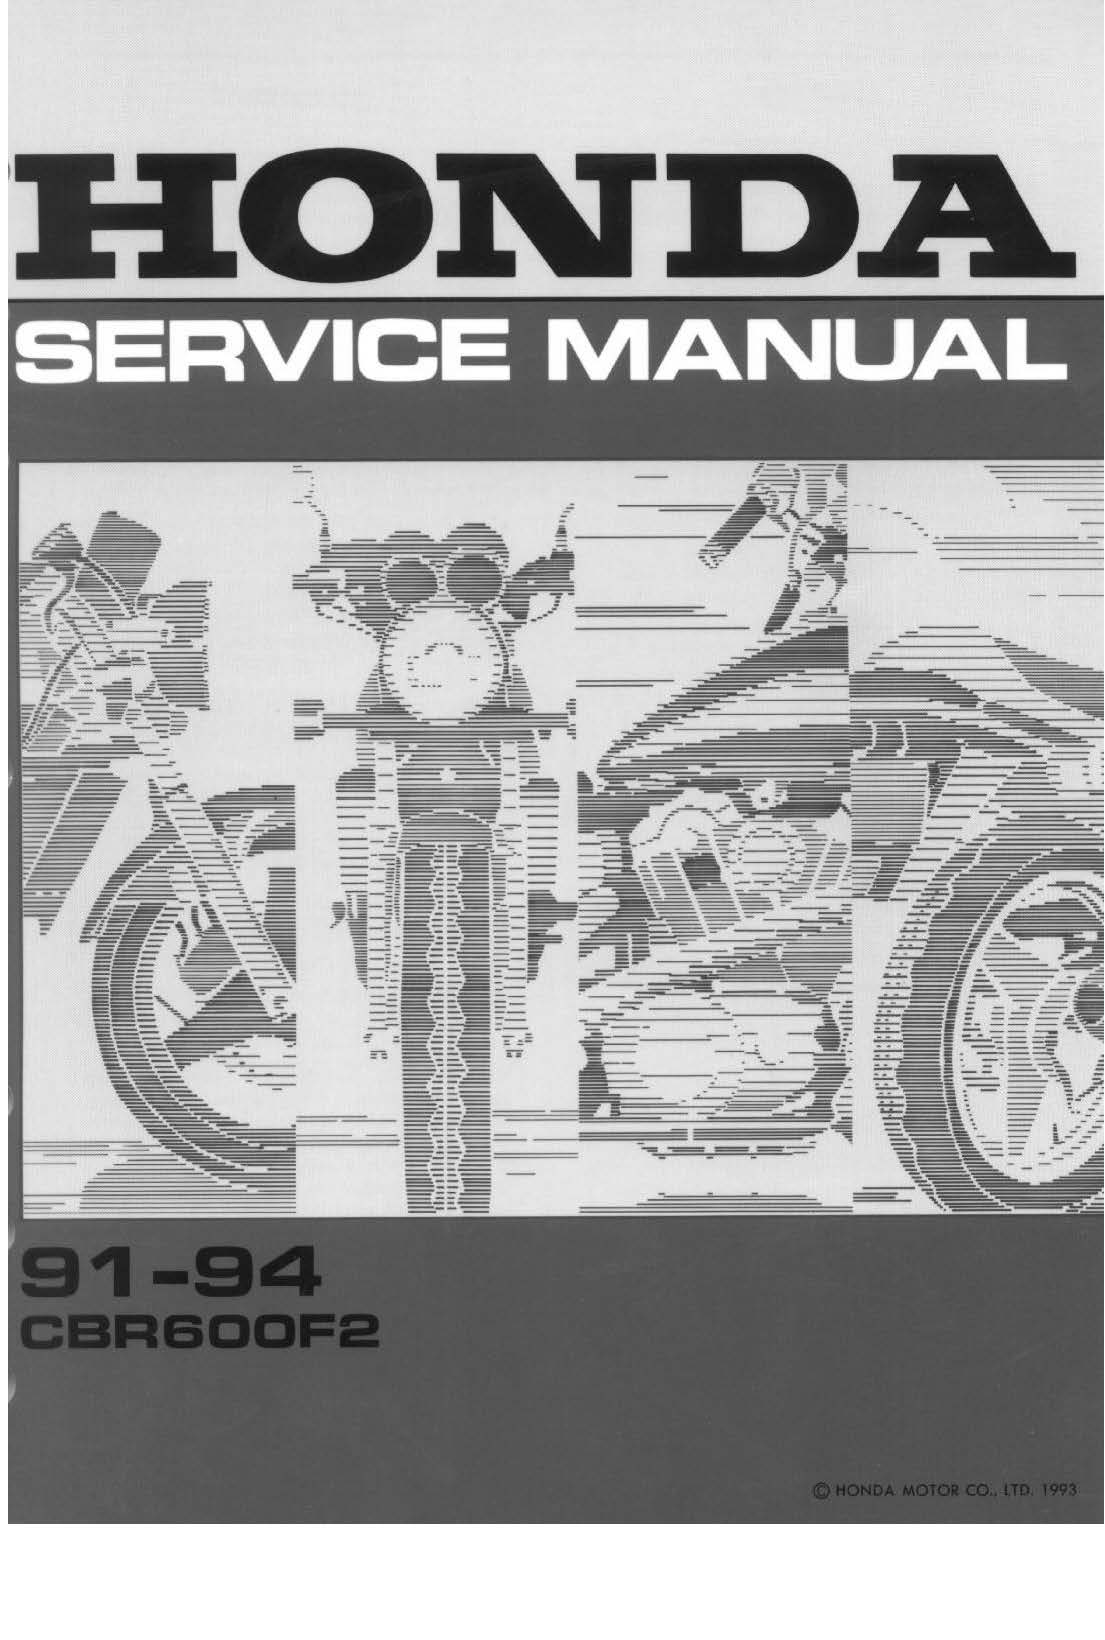 Workshop Manual for Honda CBR600F2 (1991-1994)